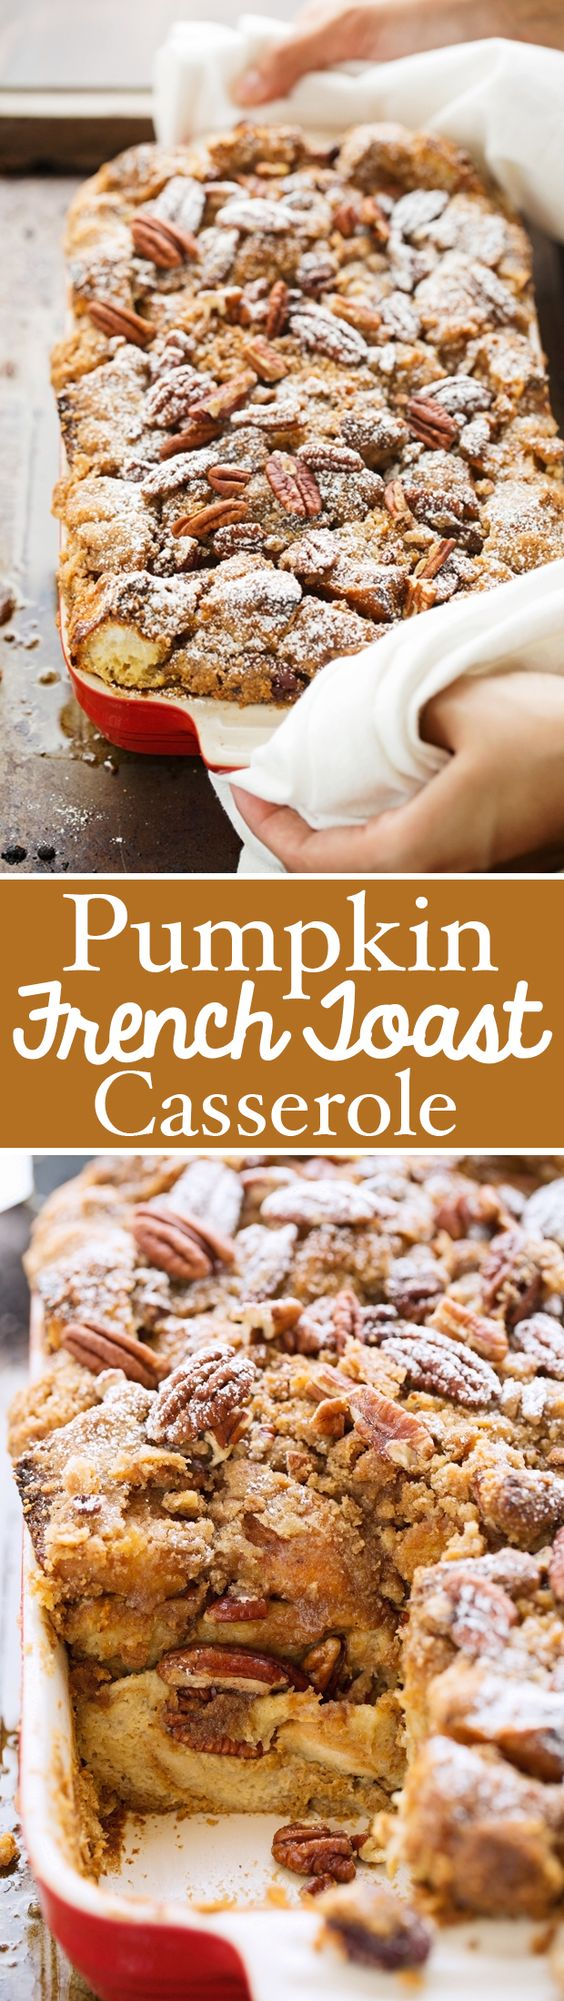 Pumpkin French Toast Casserole - This recipe is super friendly to make ahead of time and perfect for entertaining brunch guests of for Saturday morning breakfast! #pumpkinfrenchtoast #frenchtoastcasserole #frenchtoast | Littlespicejar.com